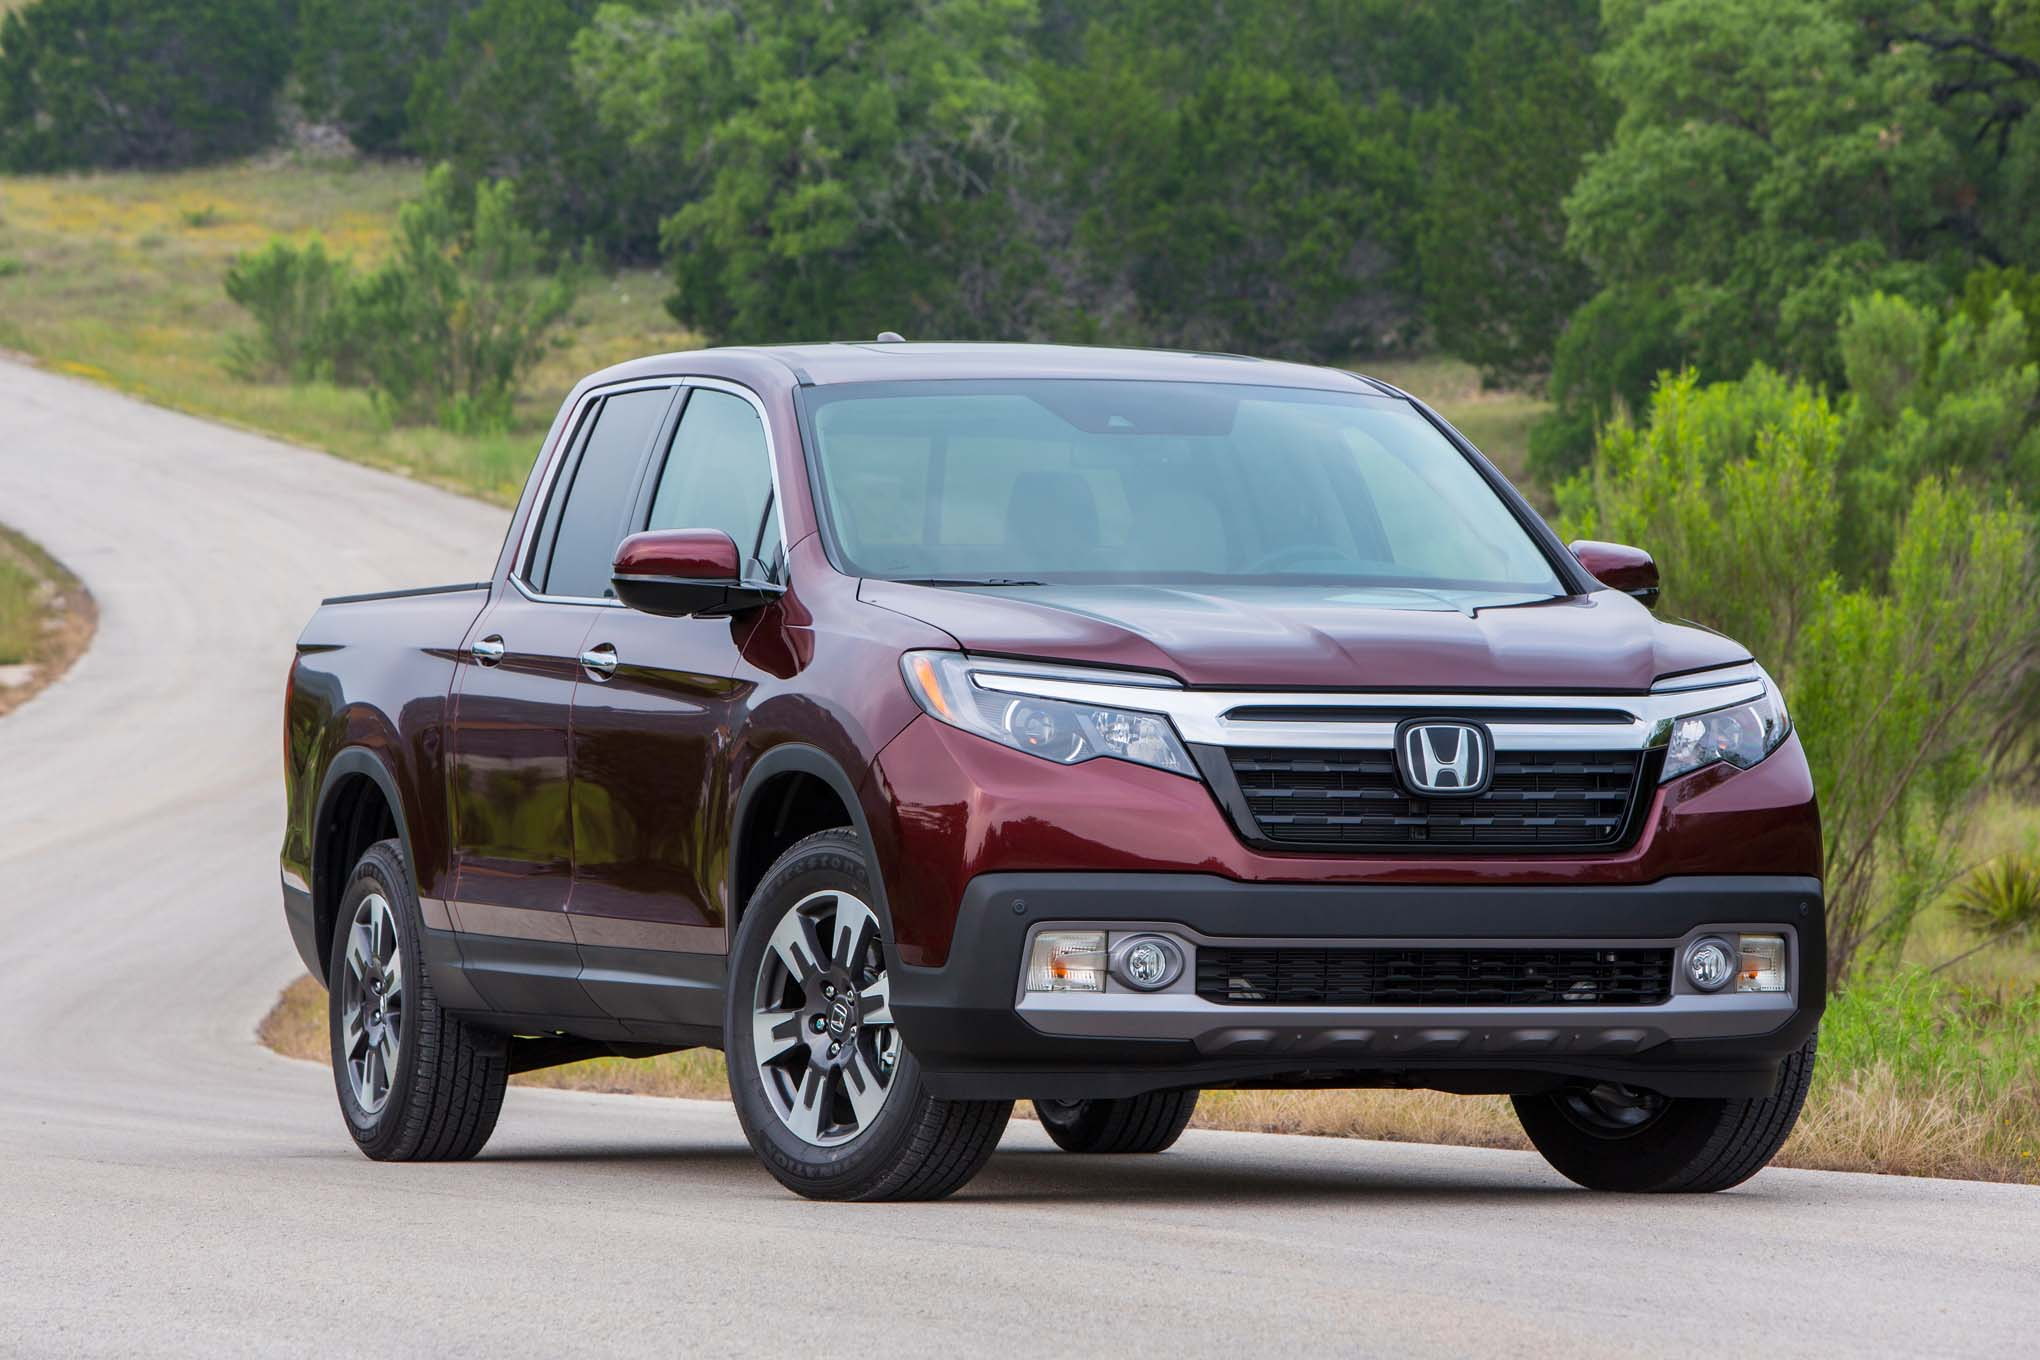 Crv 2017 Review >> 2017 Honda Ridgeline Review